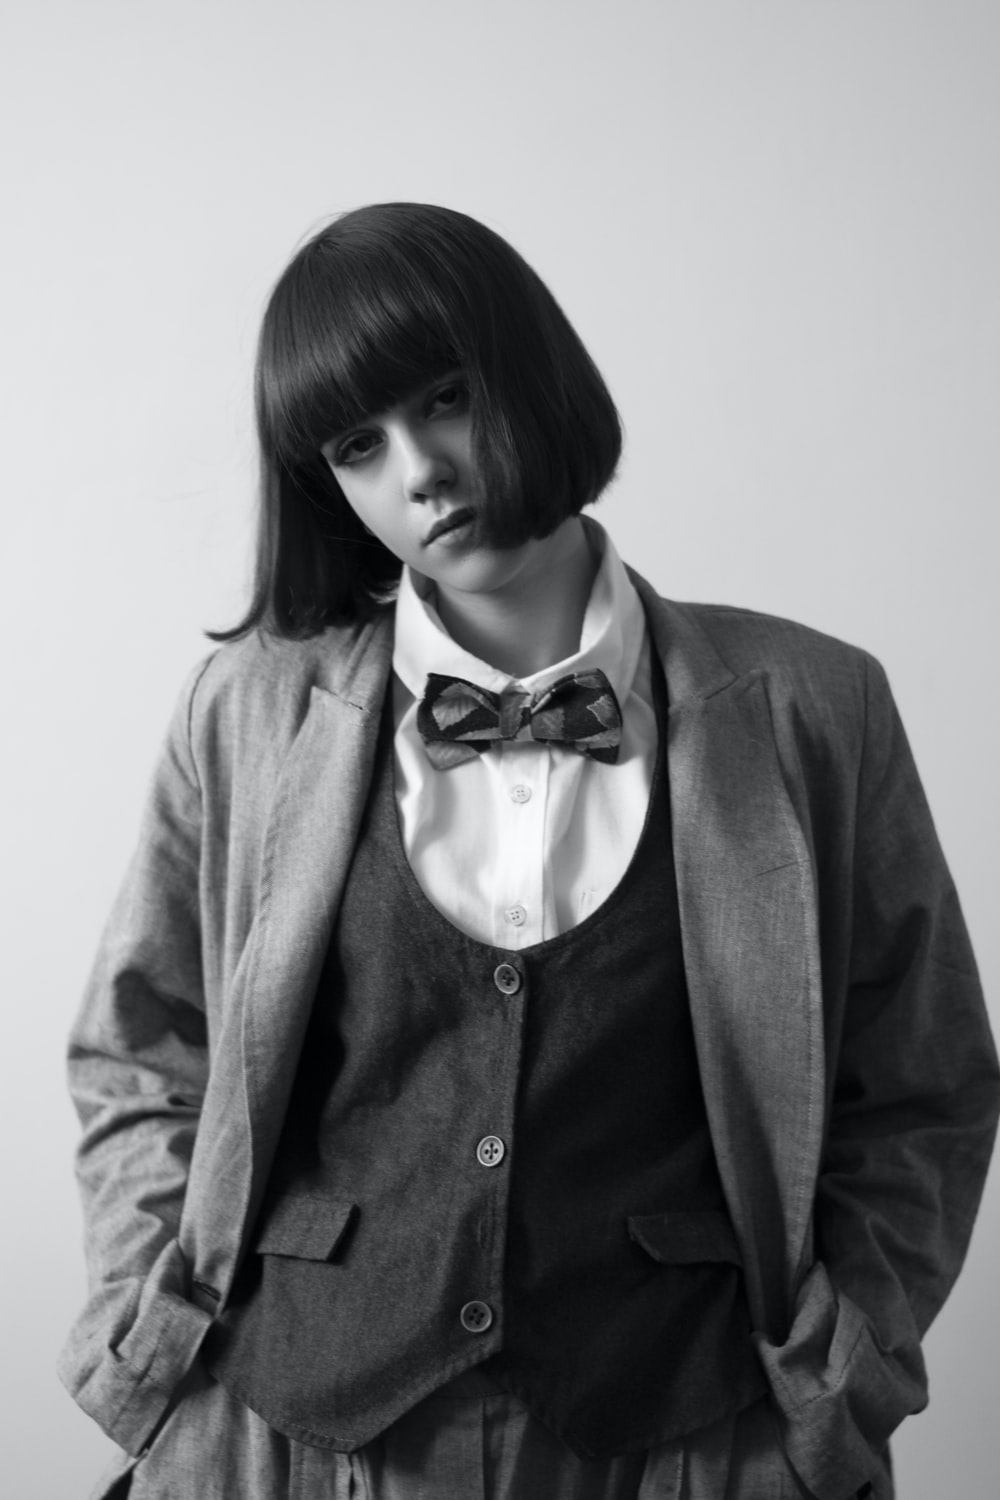 woman in gray blazer with black bow tie